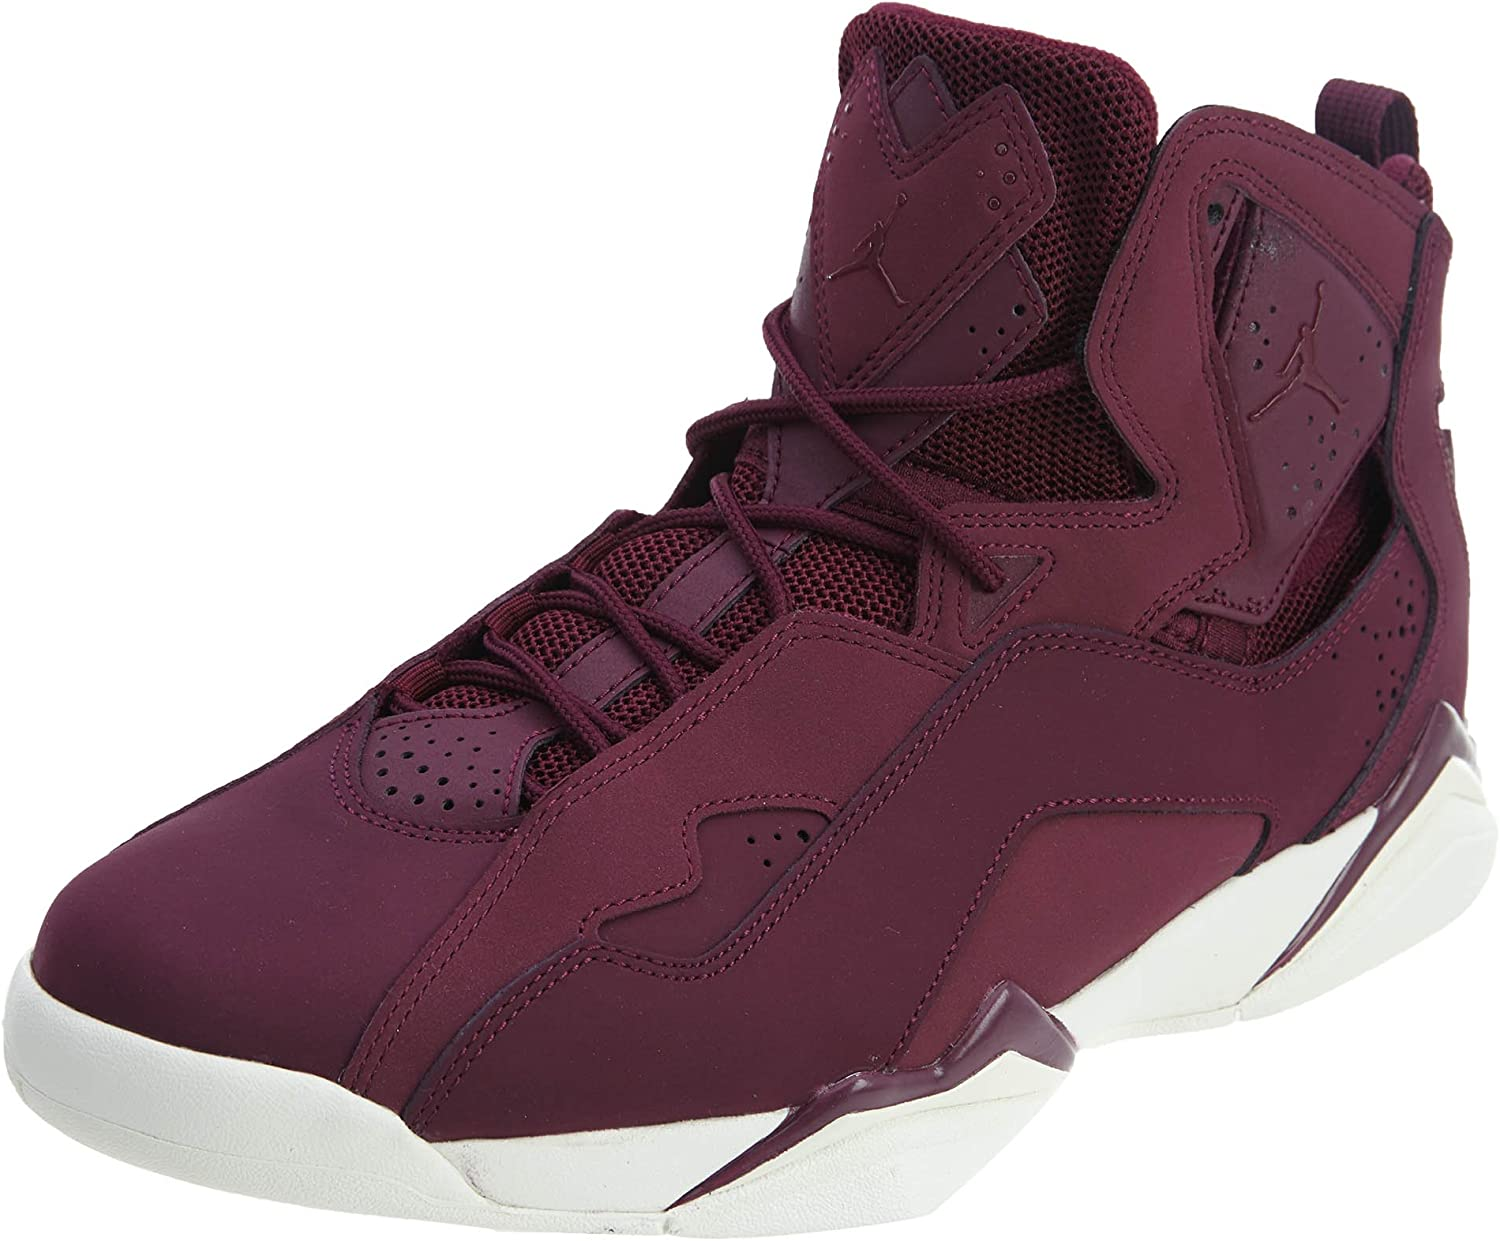 Nike Jordan True Flight 625BORDEAUX BORDSAIL 12